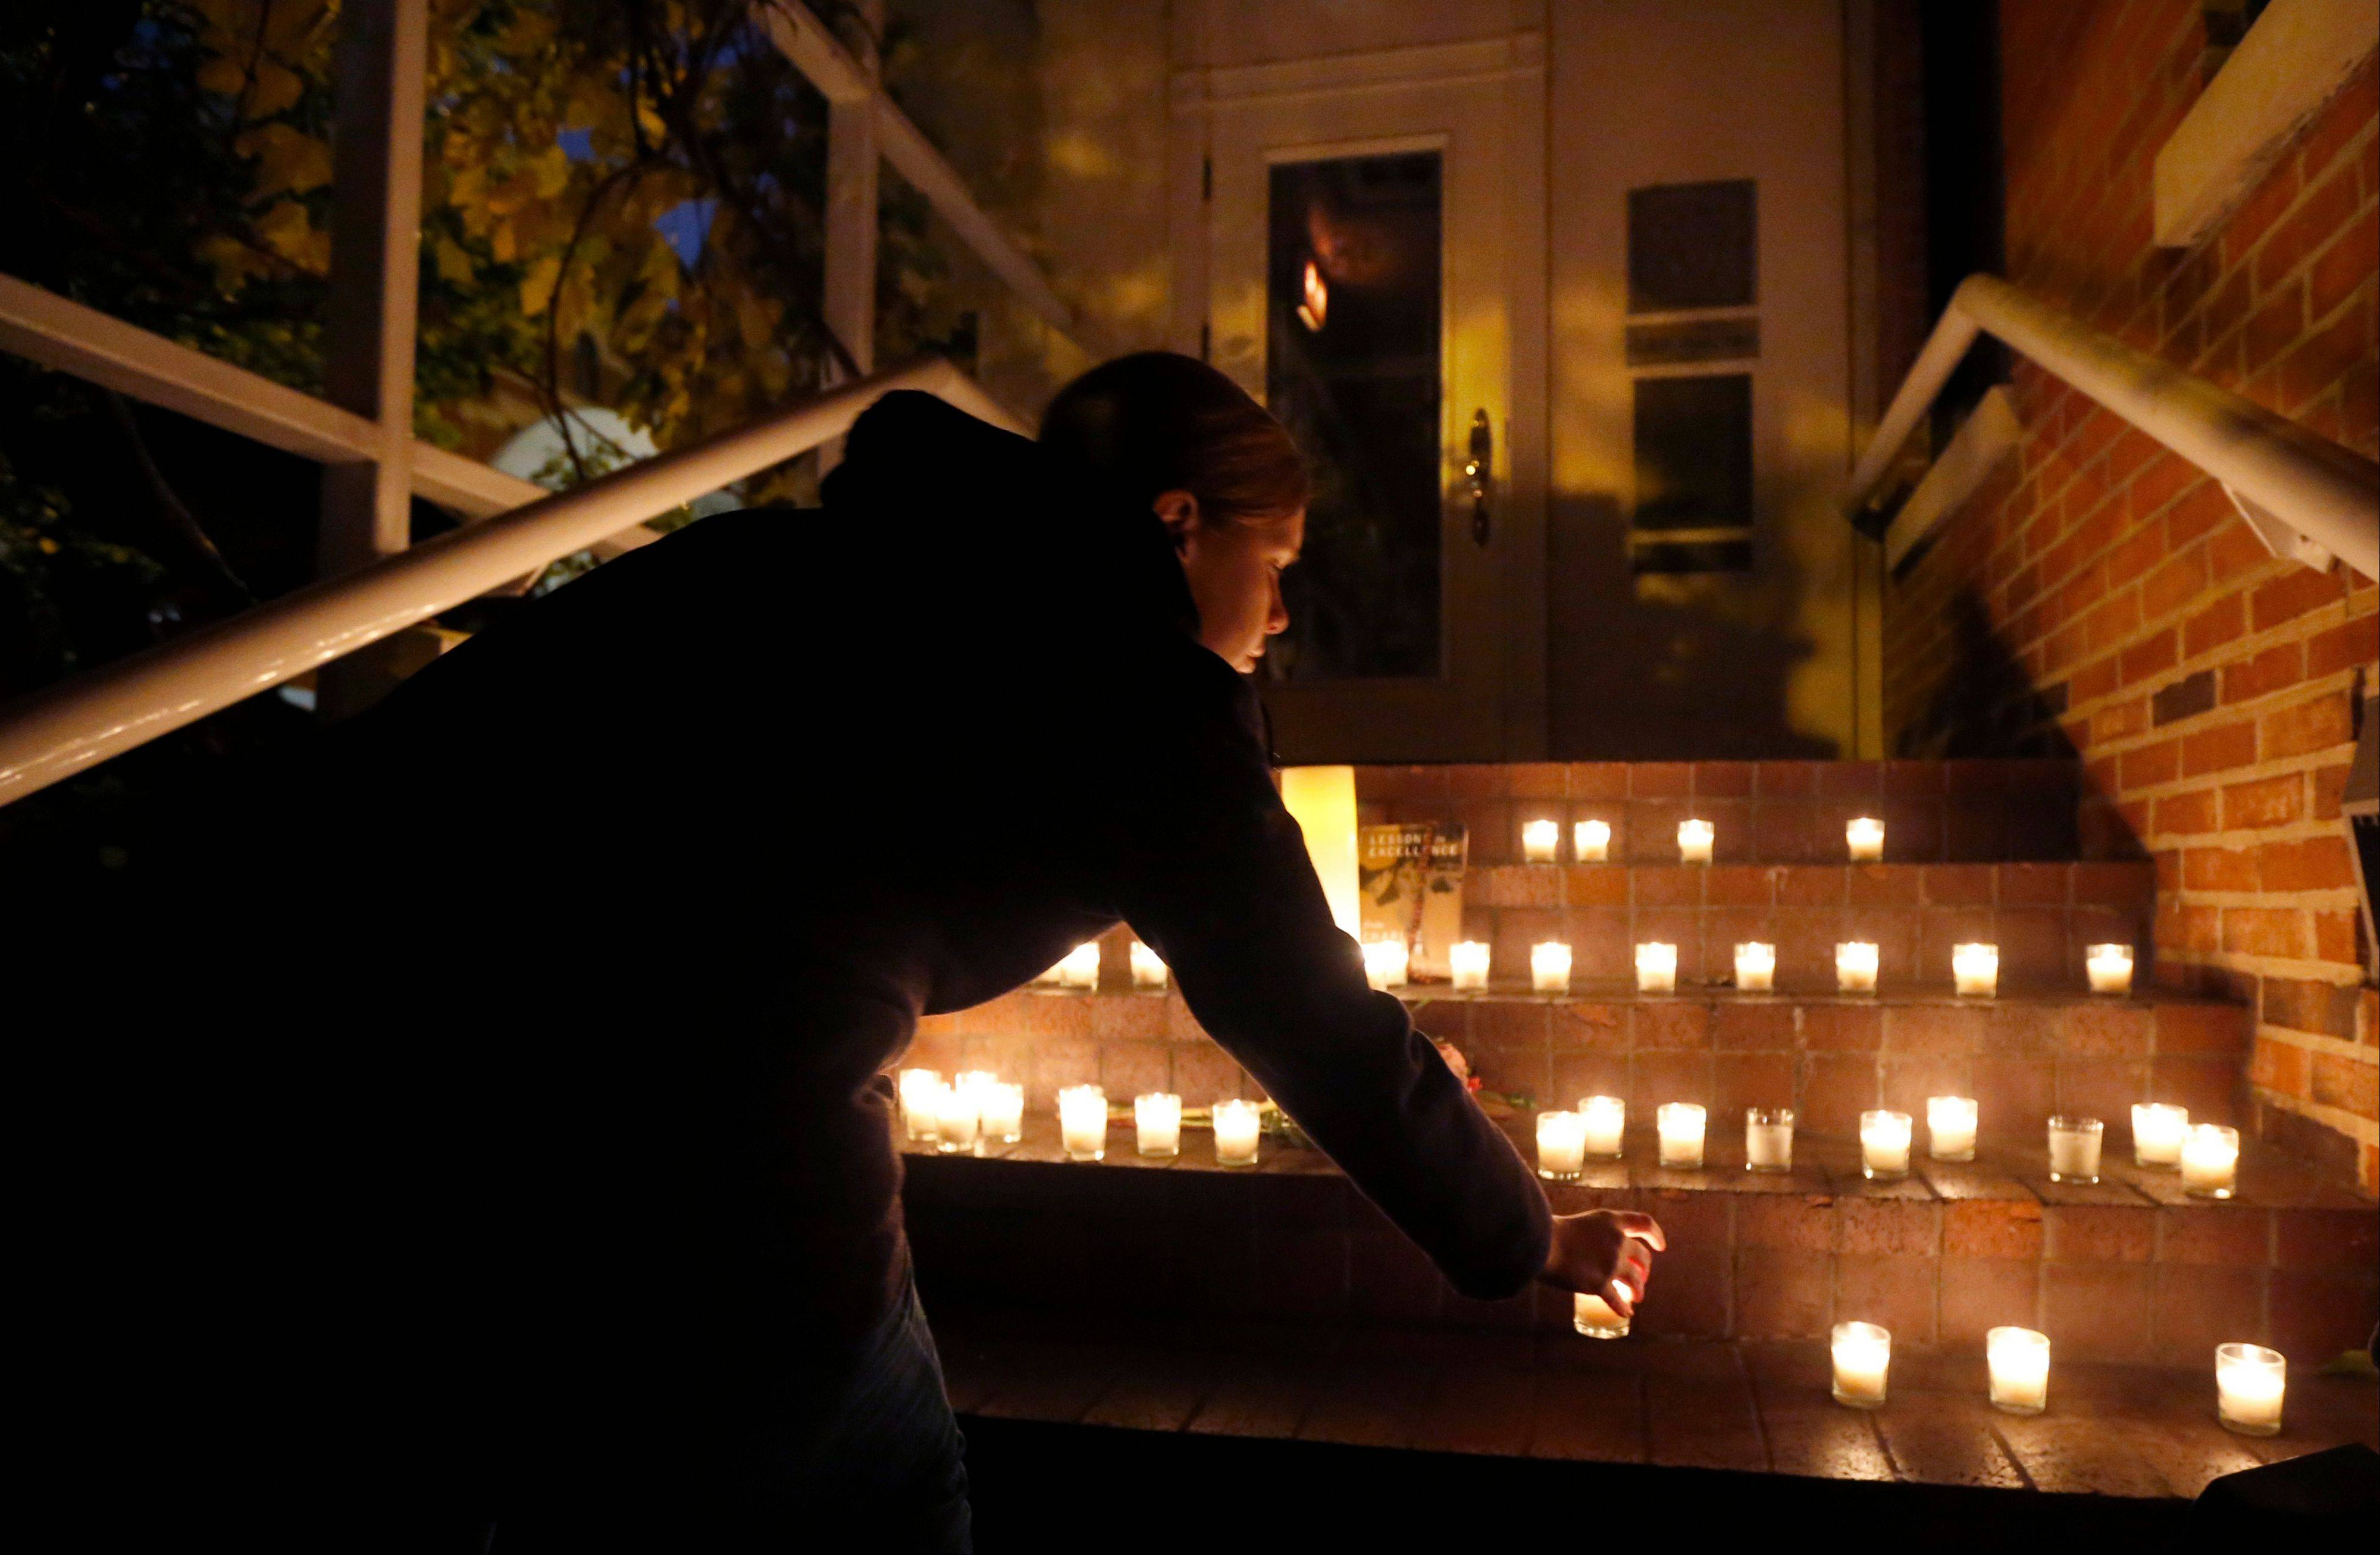 A woman places a candle on the steps of Chicago Chef Charlie Trotter's former restaurant after friends and former employees of Trotter's placed them there after a candle light tribute to Trotter, Tuesday, Nov. 5, 2013, in Chicago. Trotter, 54, died Tuesday, a year after closing his namesake Chicago restaurant that was credited with putting his city at the vanguard of the food world and training dozens of the nation's top chefs, including Grant Achatz and Graham Elliot.